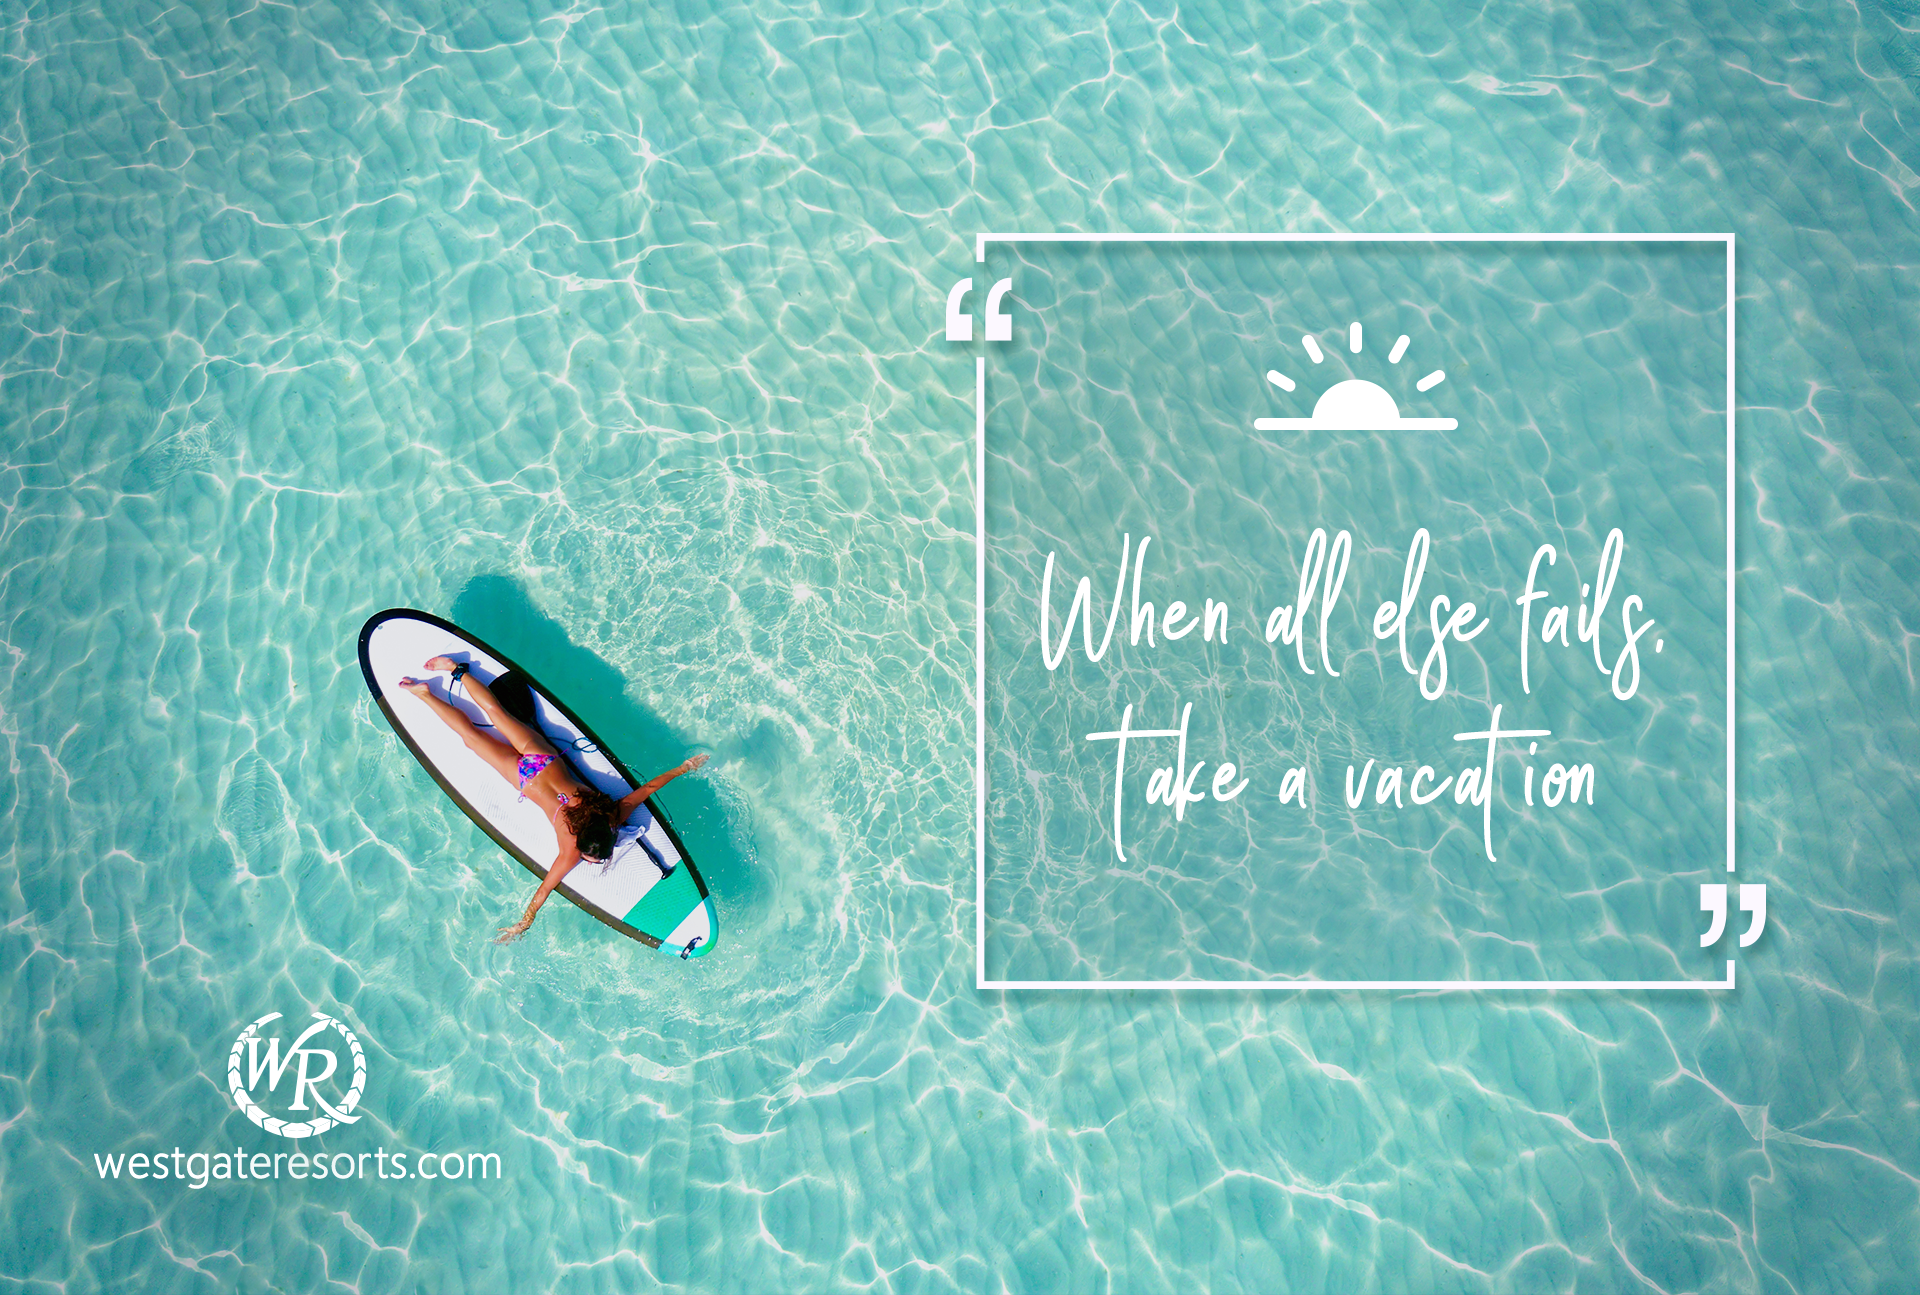 When all else fails, take a vacation | Travel Motivation Quotes | Inspirational Travel Sayings